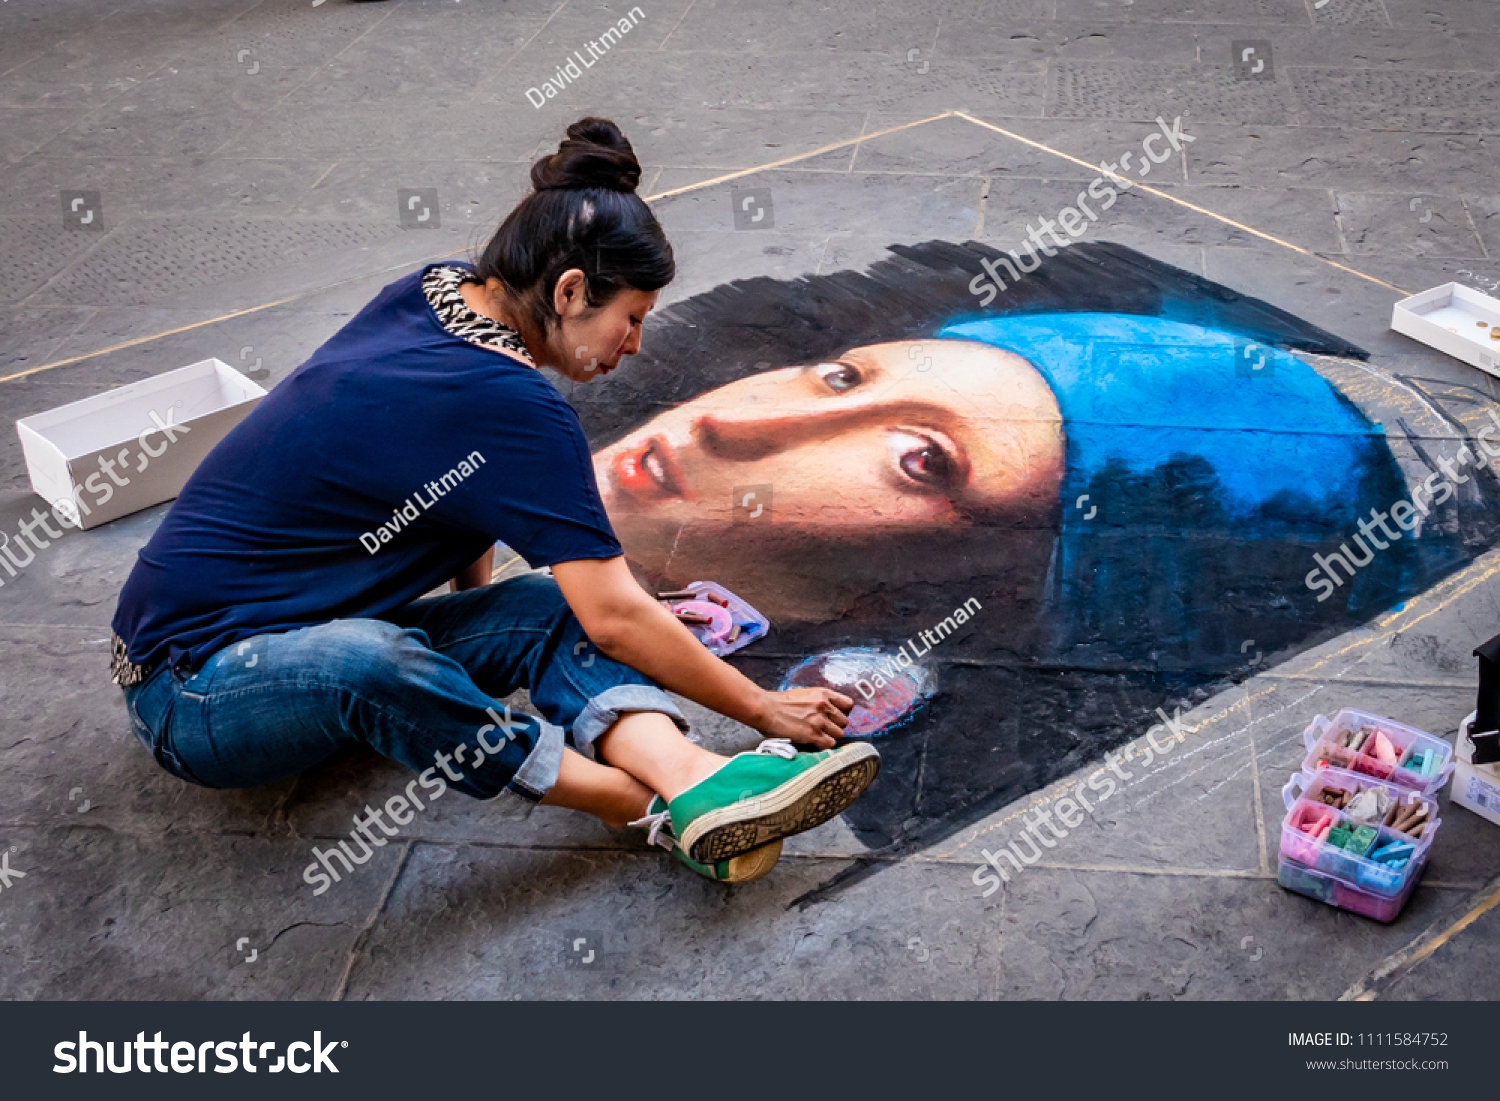 Florence, Italy - June 7, 2018: An artist draws a beautiful sidewalk mural in renaissance style with colorful chalk.